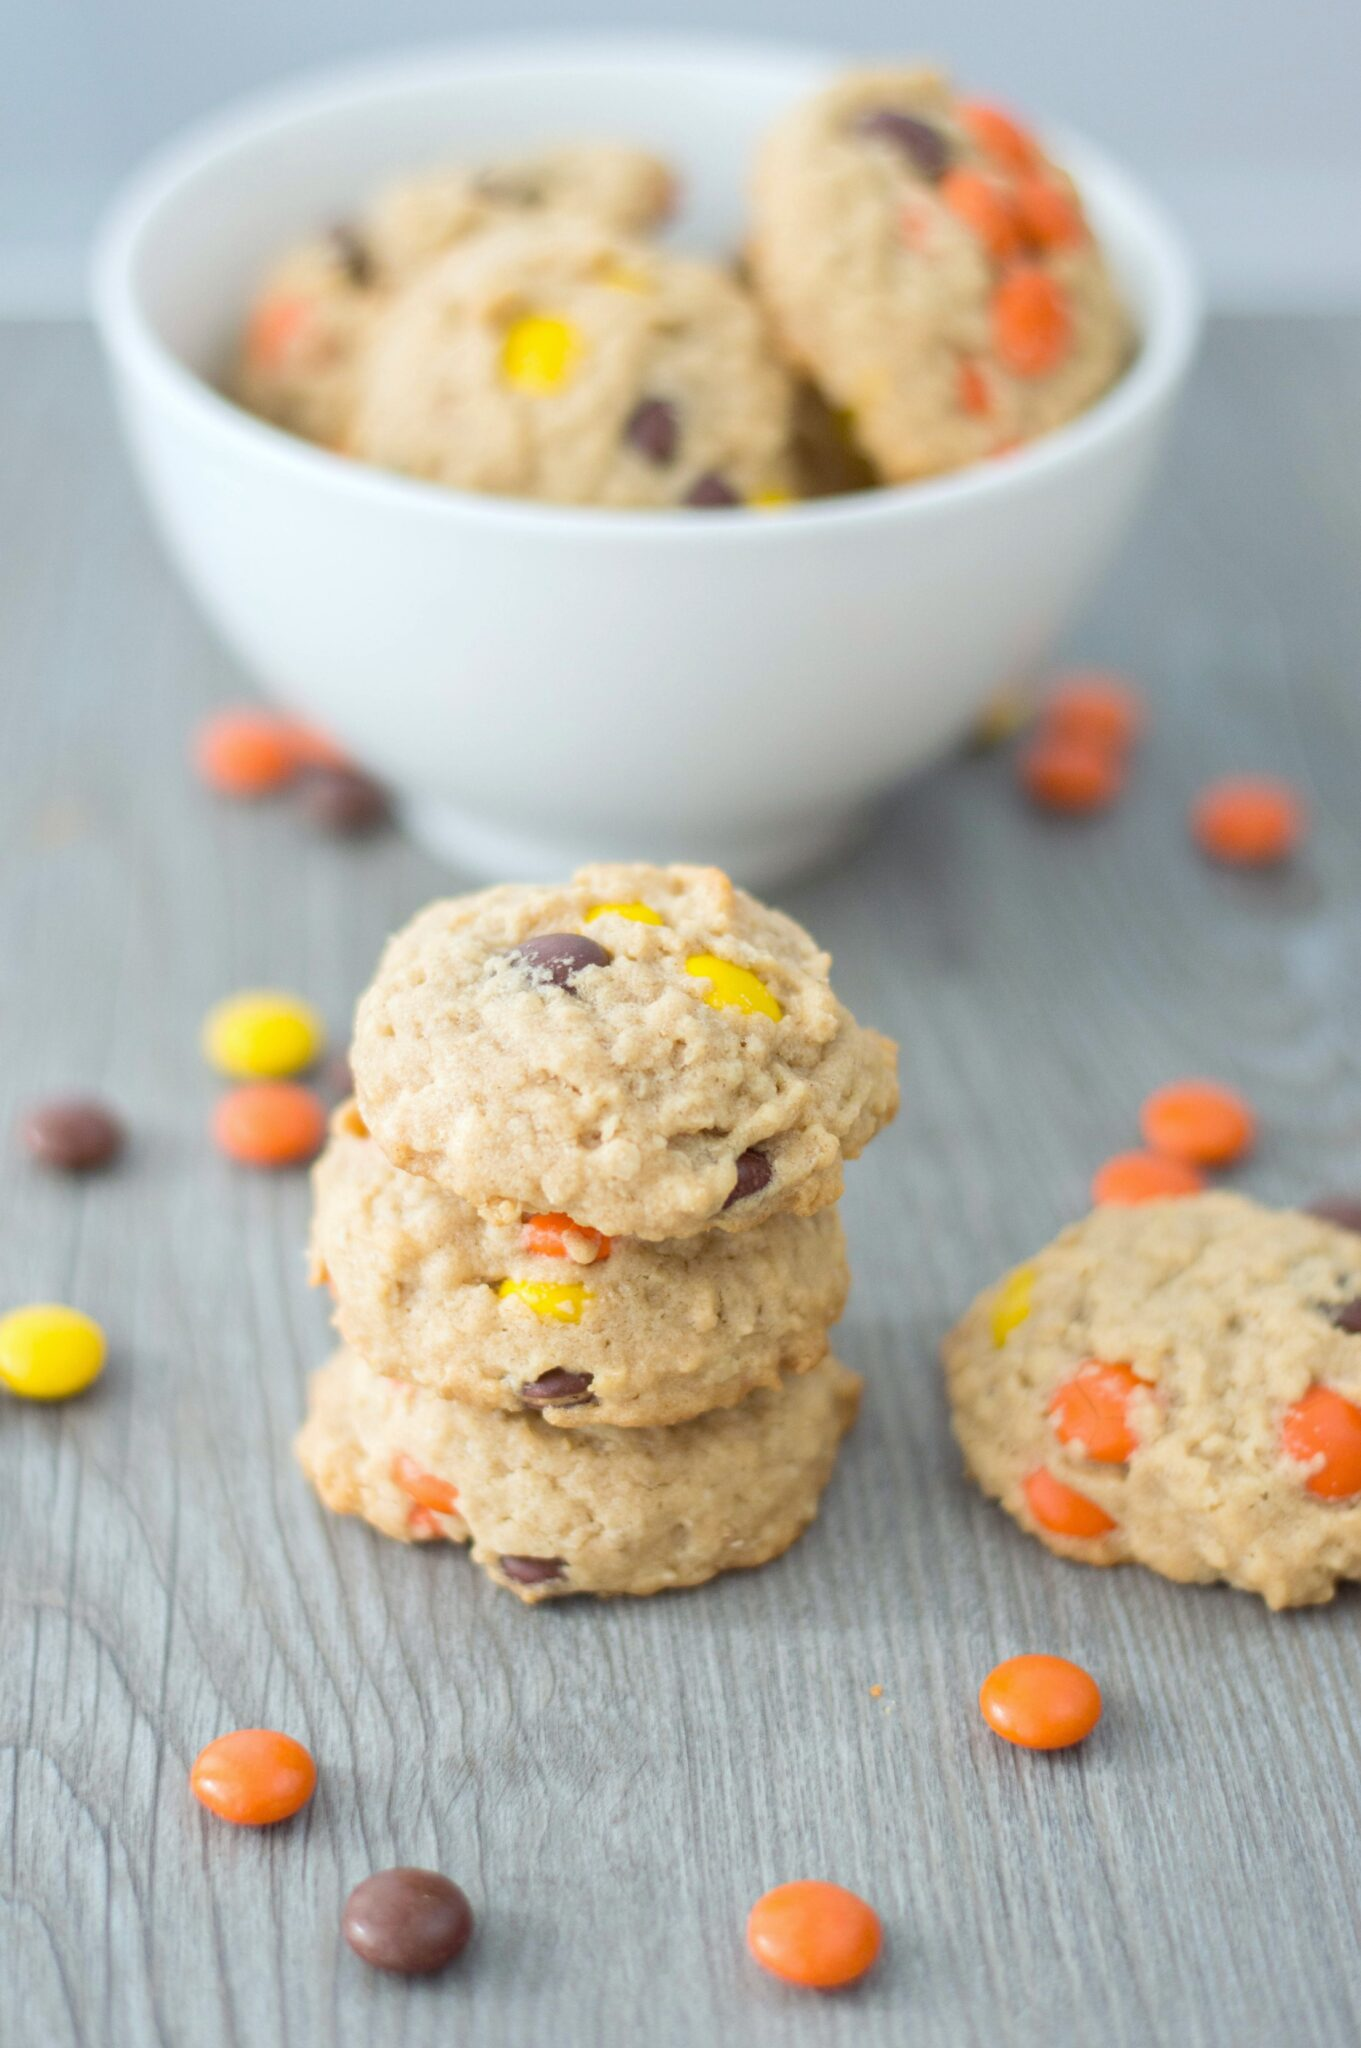 A bowl of Reese's Pieces Oatmeal Peanut Butter cookies with a stack of cookies on a grey tabletop.